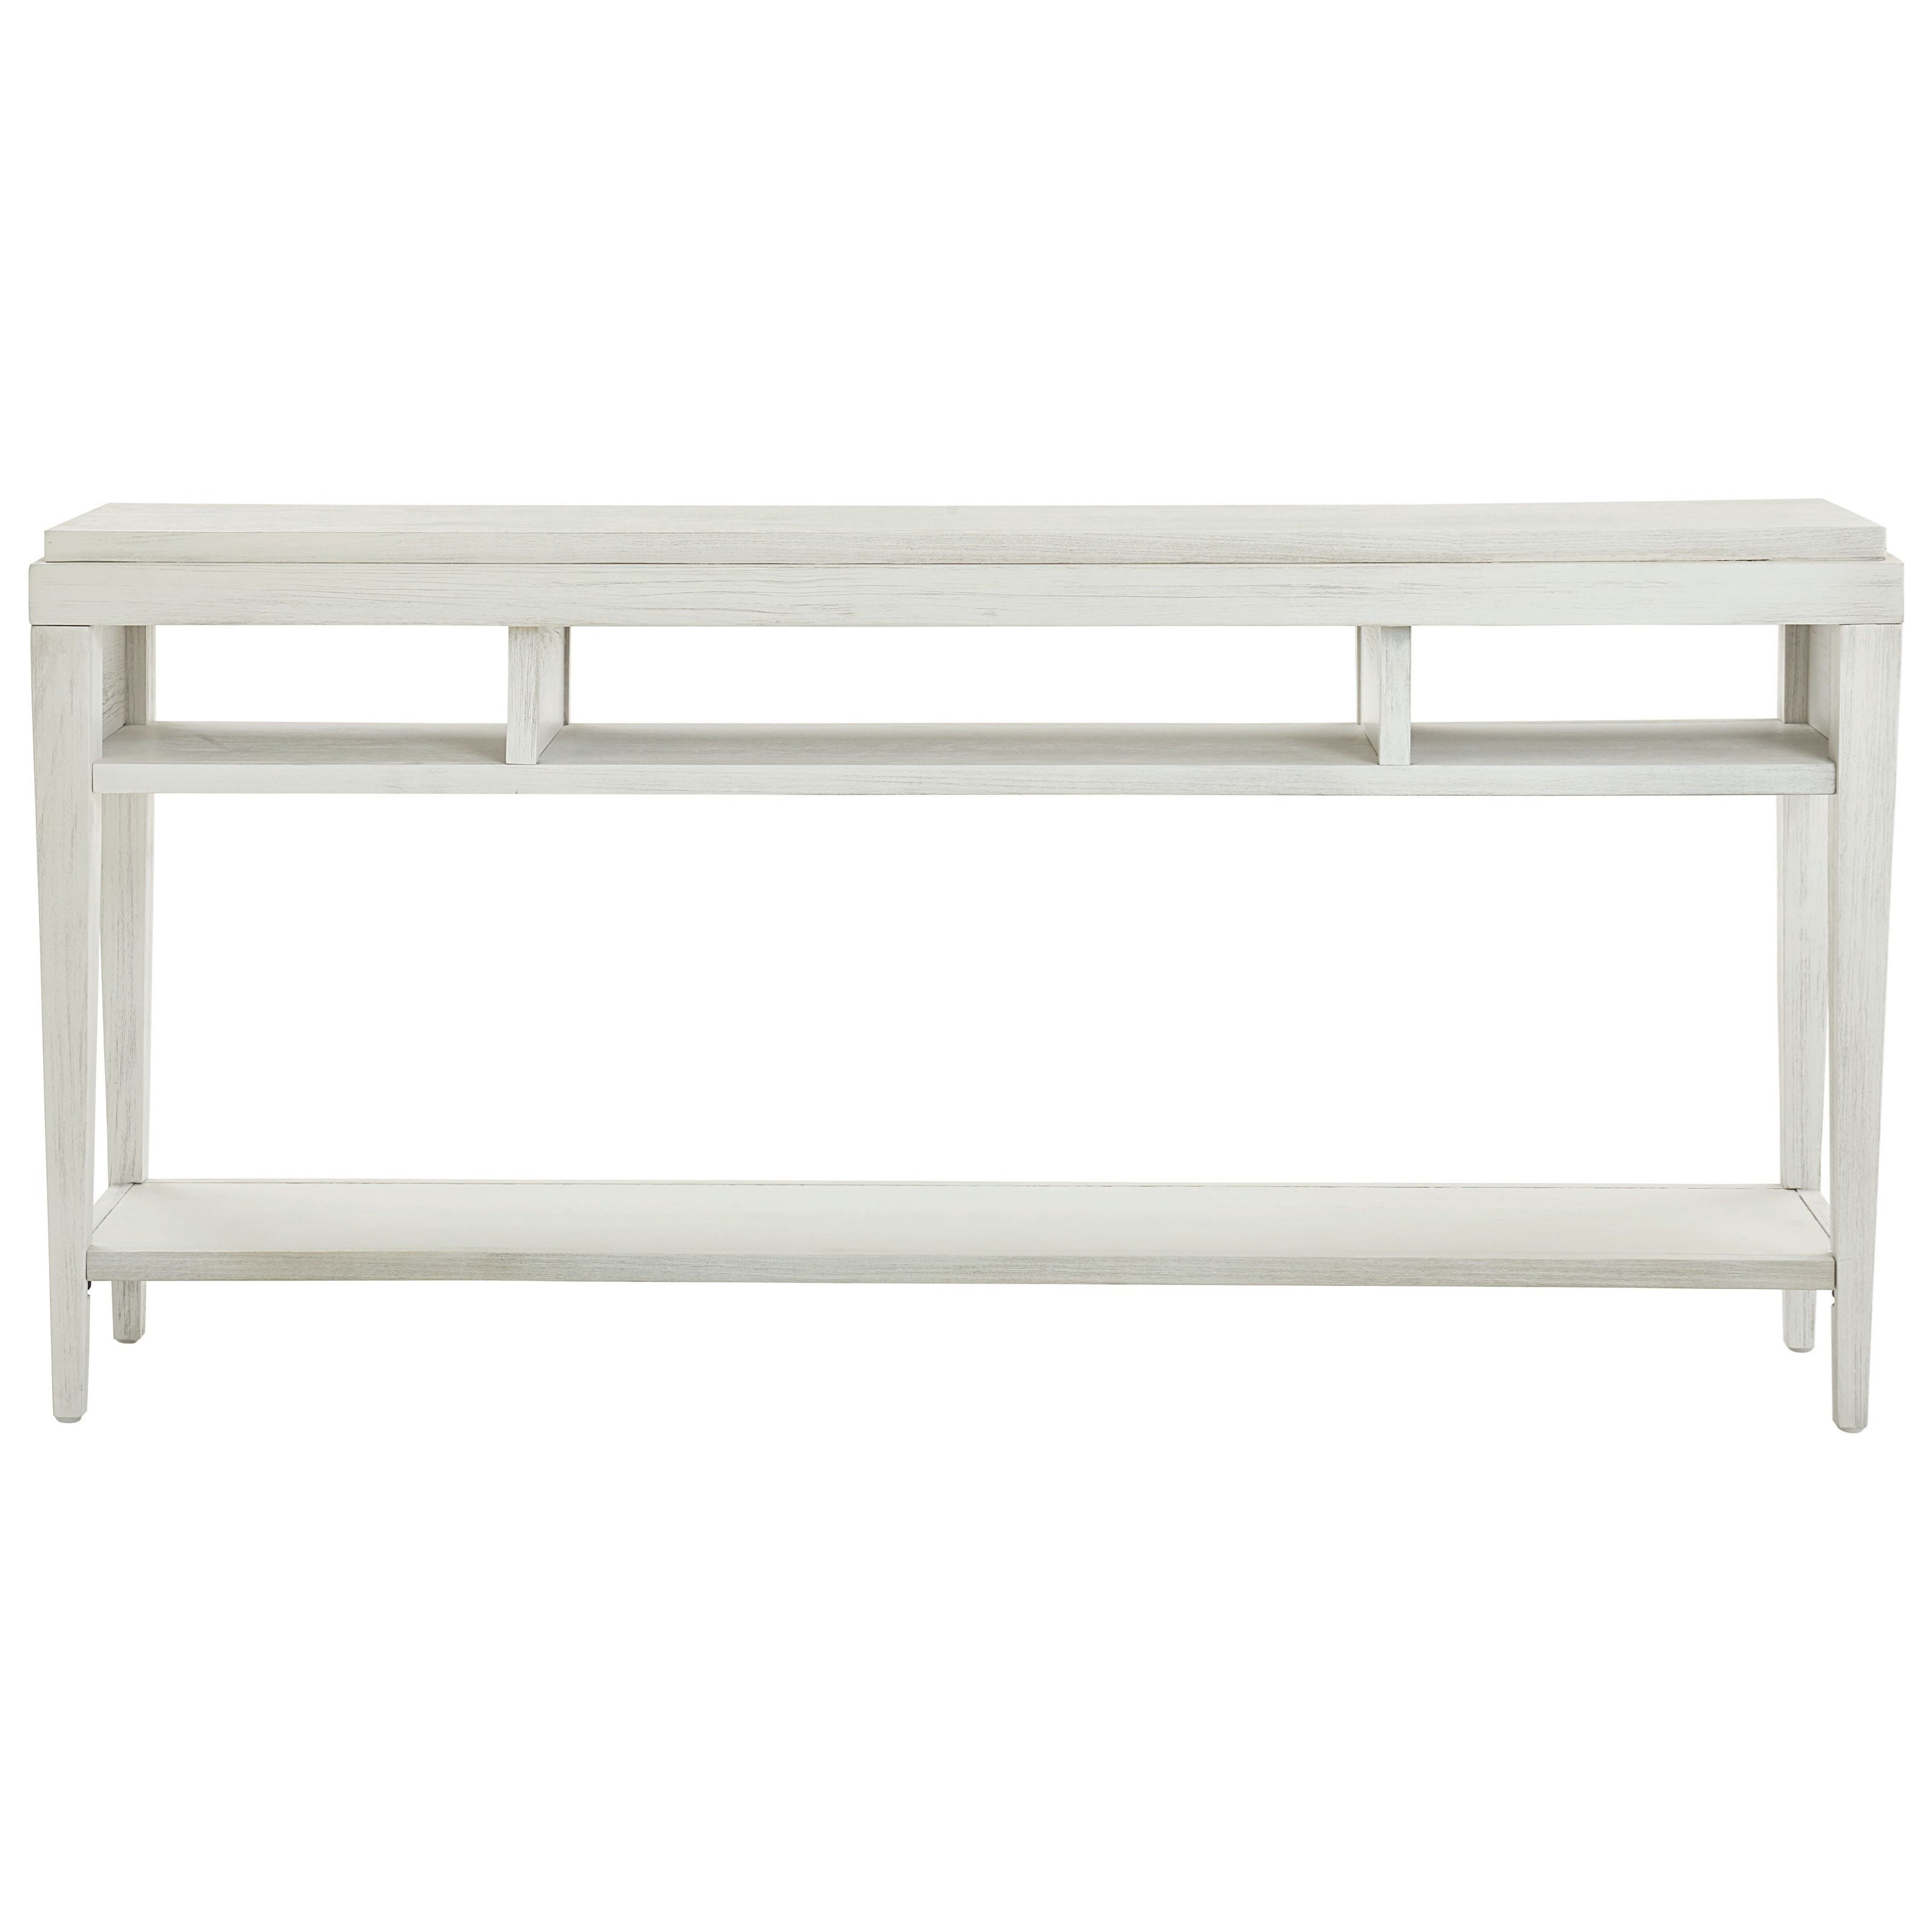 Ventura Console Table by Bassett at Fashion Furniture